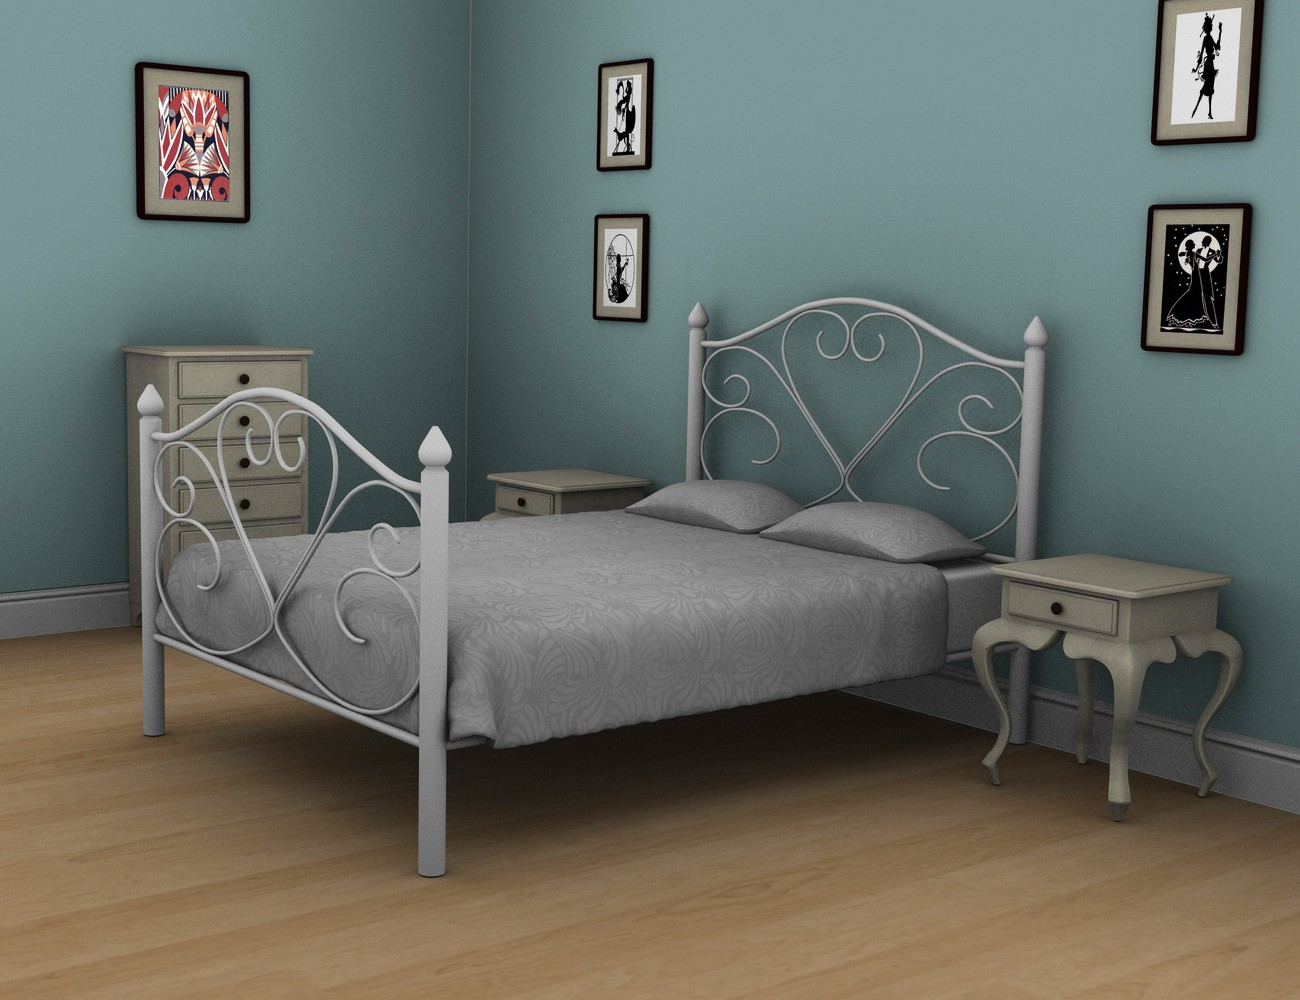 Download daz studio 3 for free daz 3d bedroom furniture for M s bedroom furniture